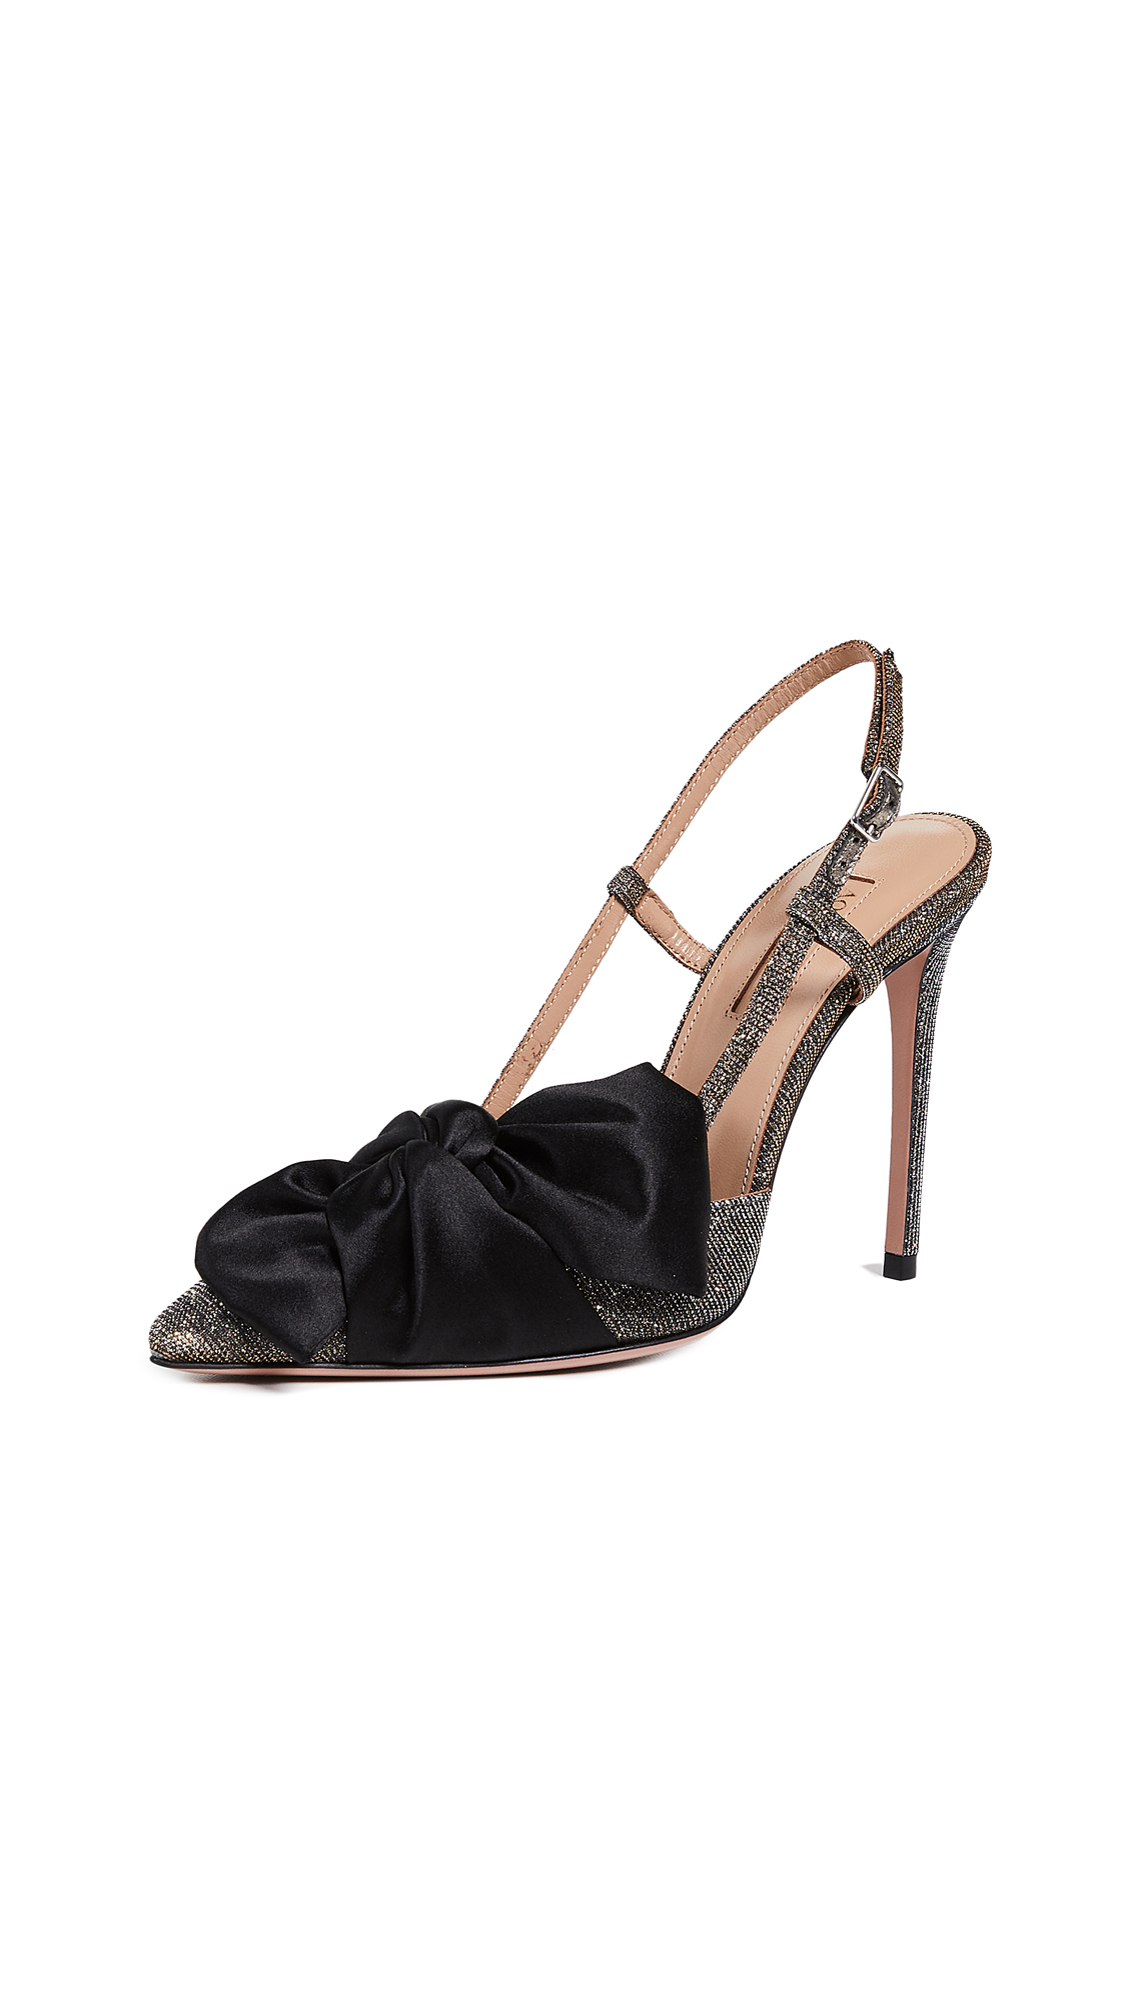 Aquazzura Versailles 105mm Pumps - Black/Multicolor